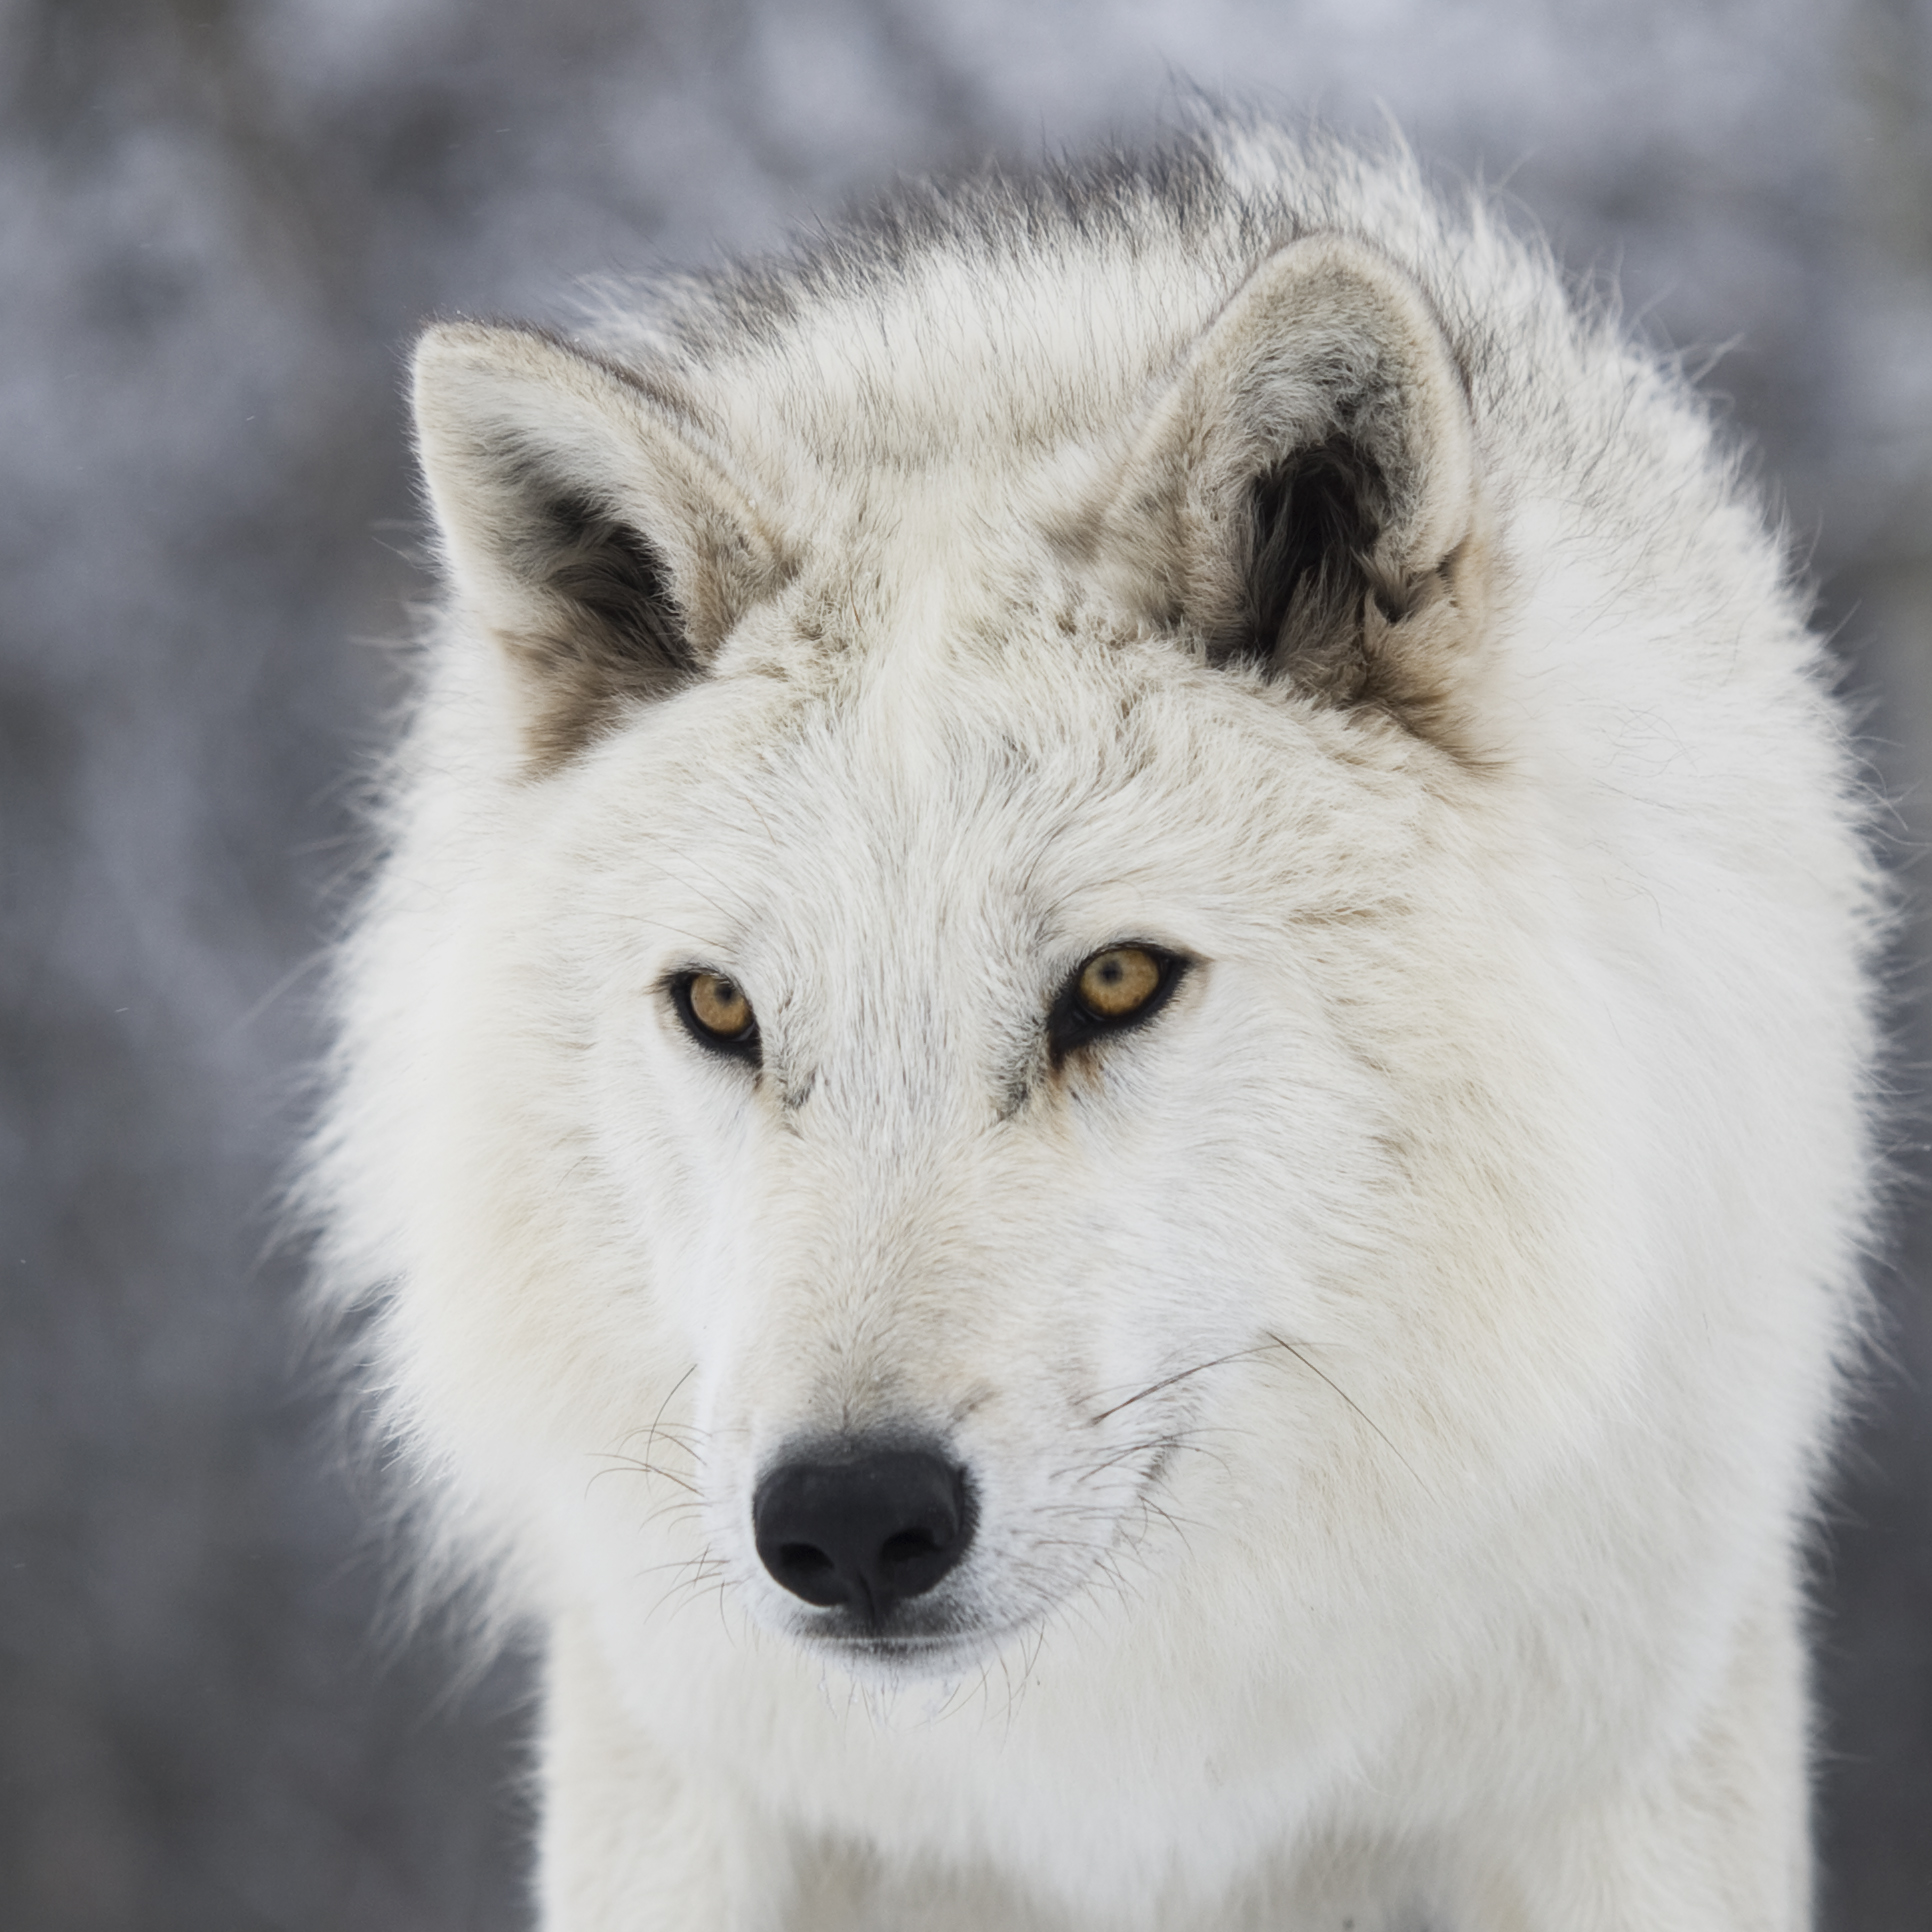 Direwolves of Game of Thrones: Real or Mythological?